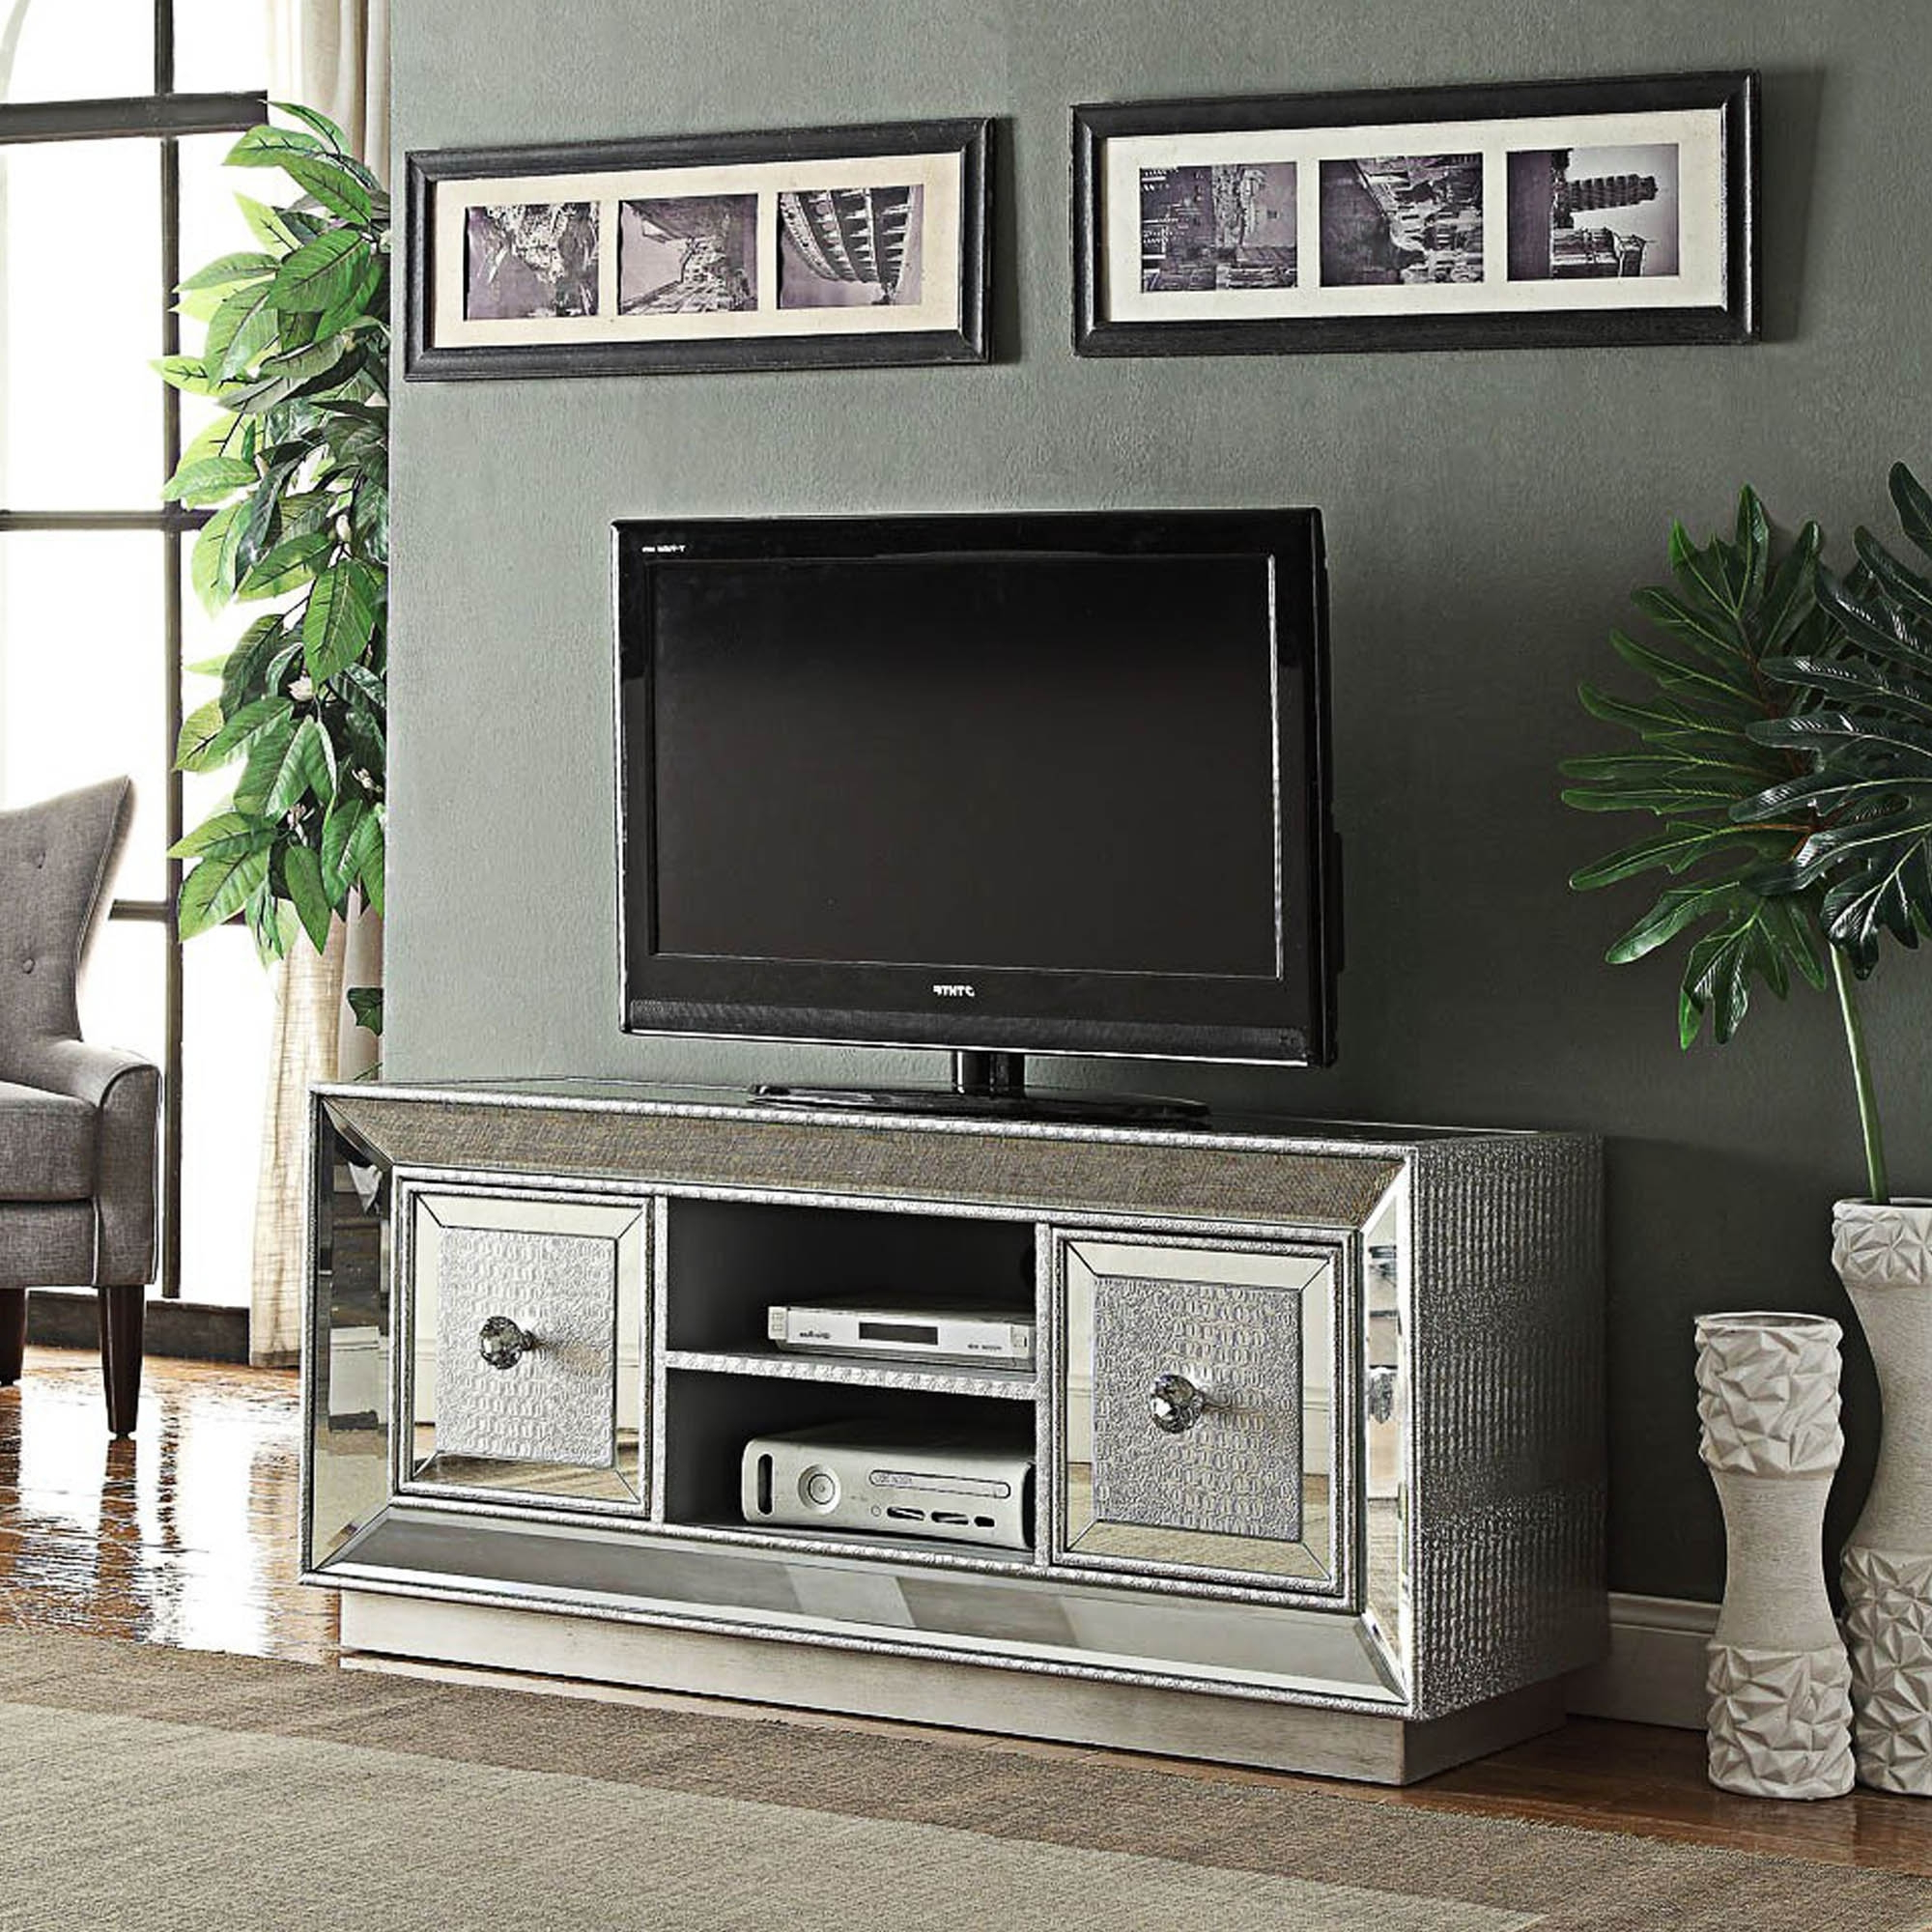 Homesdirect365 With Regard To Mirrored Furniture Tv Unit (Gallery 9 of 20)